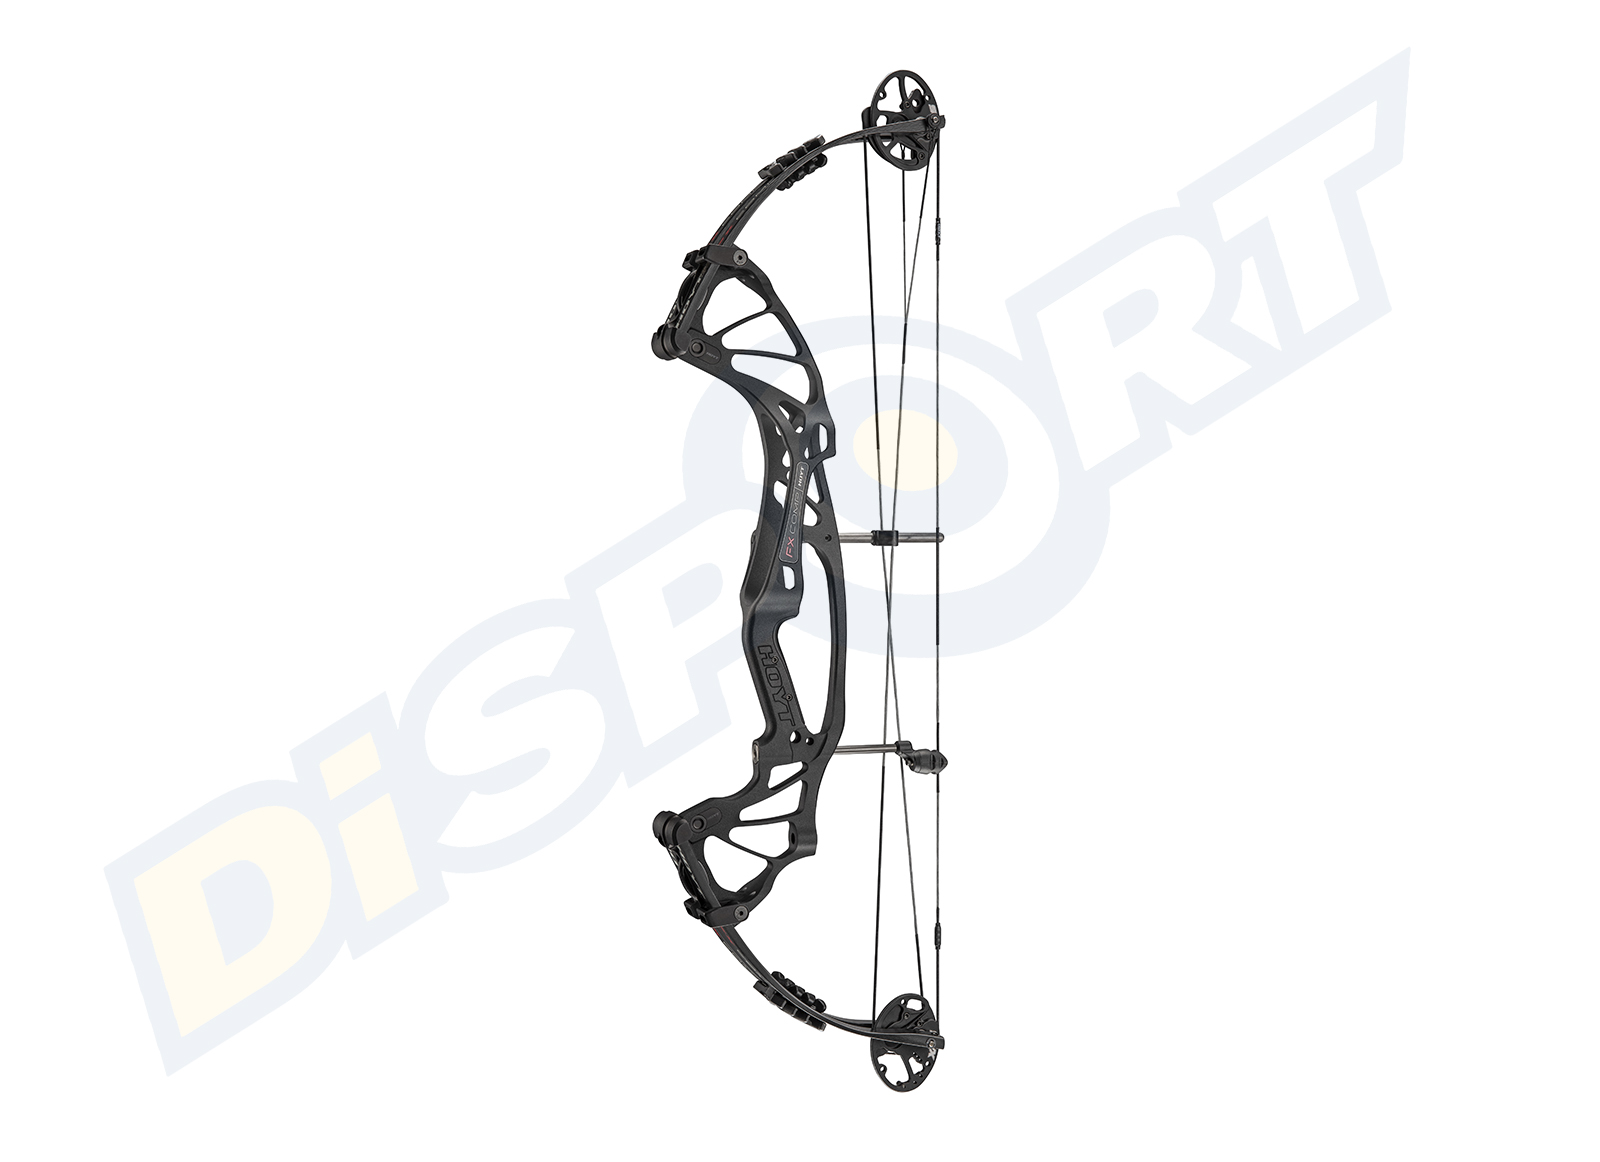 HOYT COMPOUND FX COMP SVX 2020 BLACKOUT